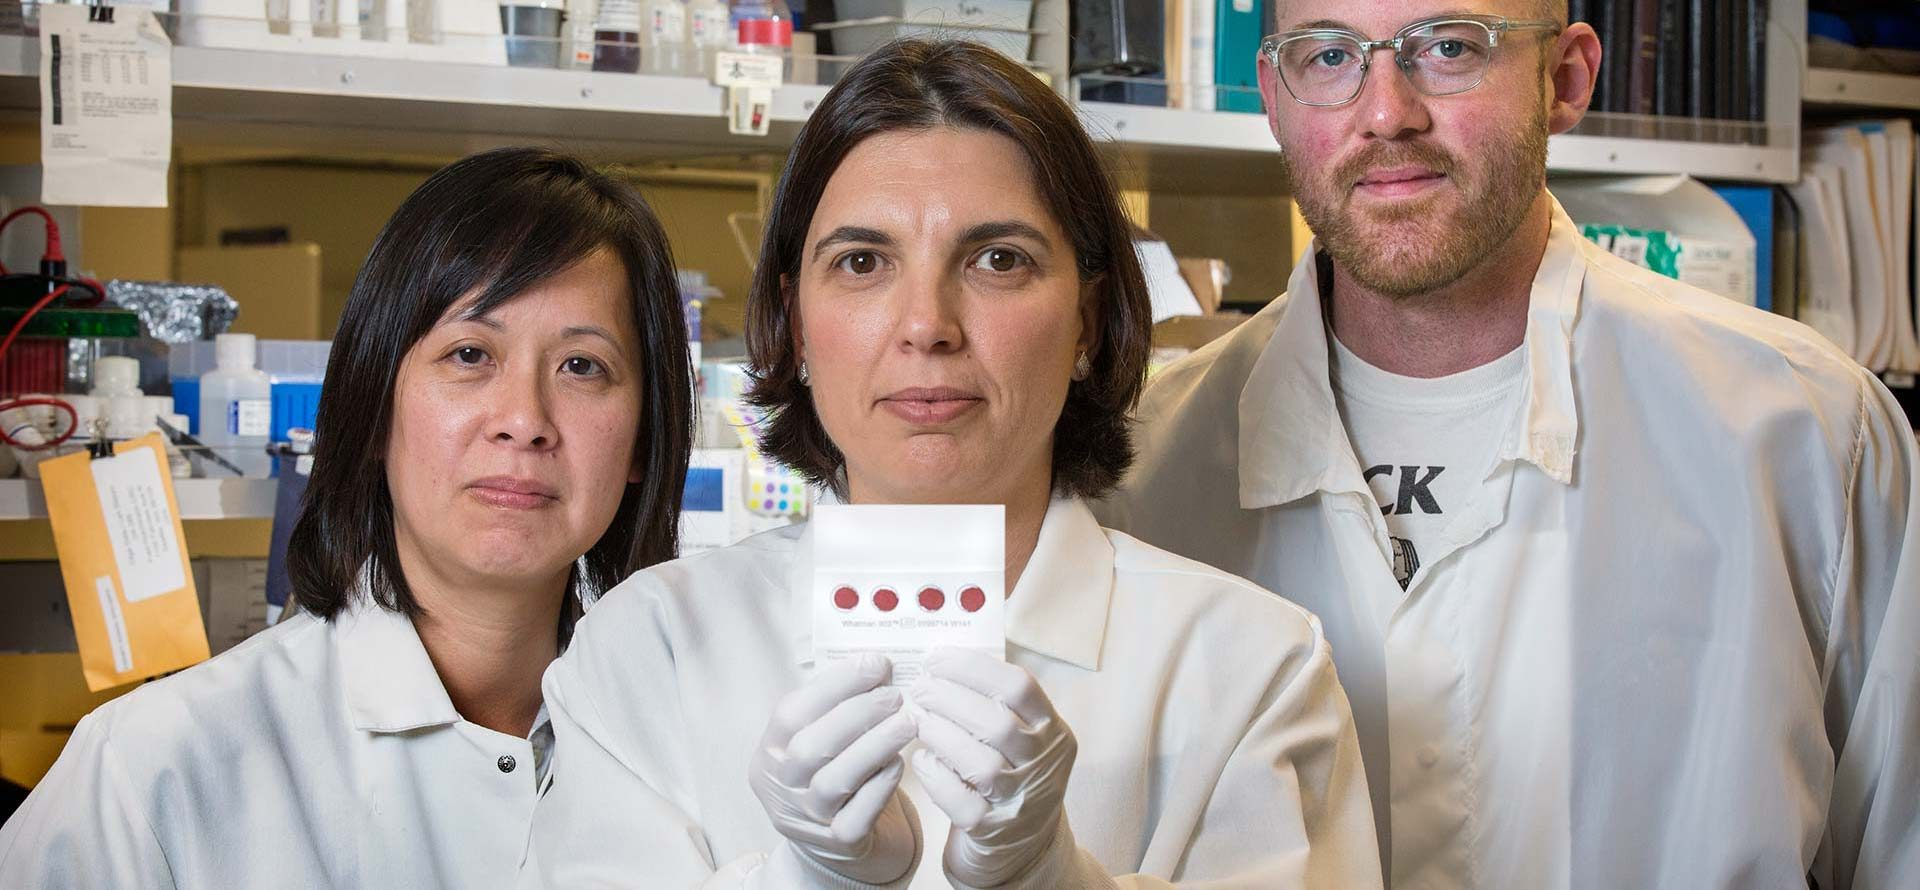 Leukemia researchers (from left) Lan Beppu, Dr. Olga Sala-Torra and Jordan Smith with a low-cost tool for diagnosing chronic myeloid leukemia.